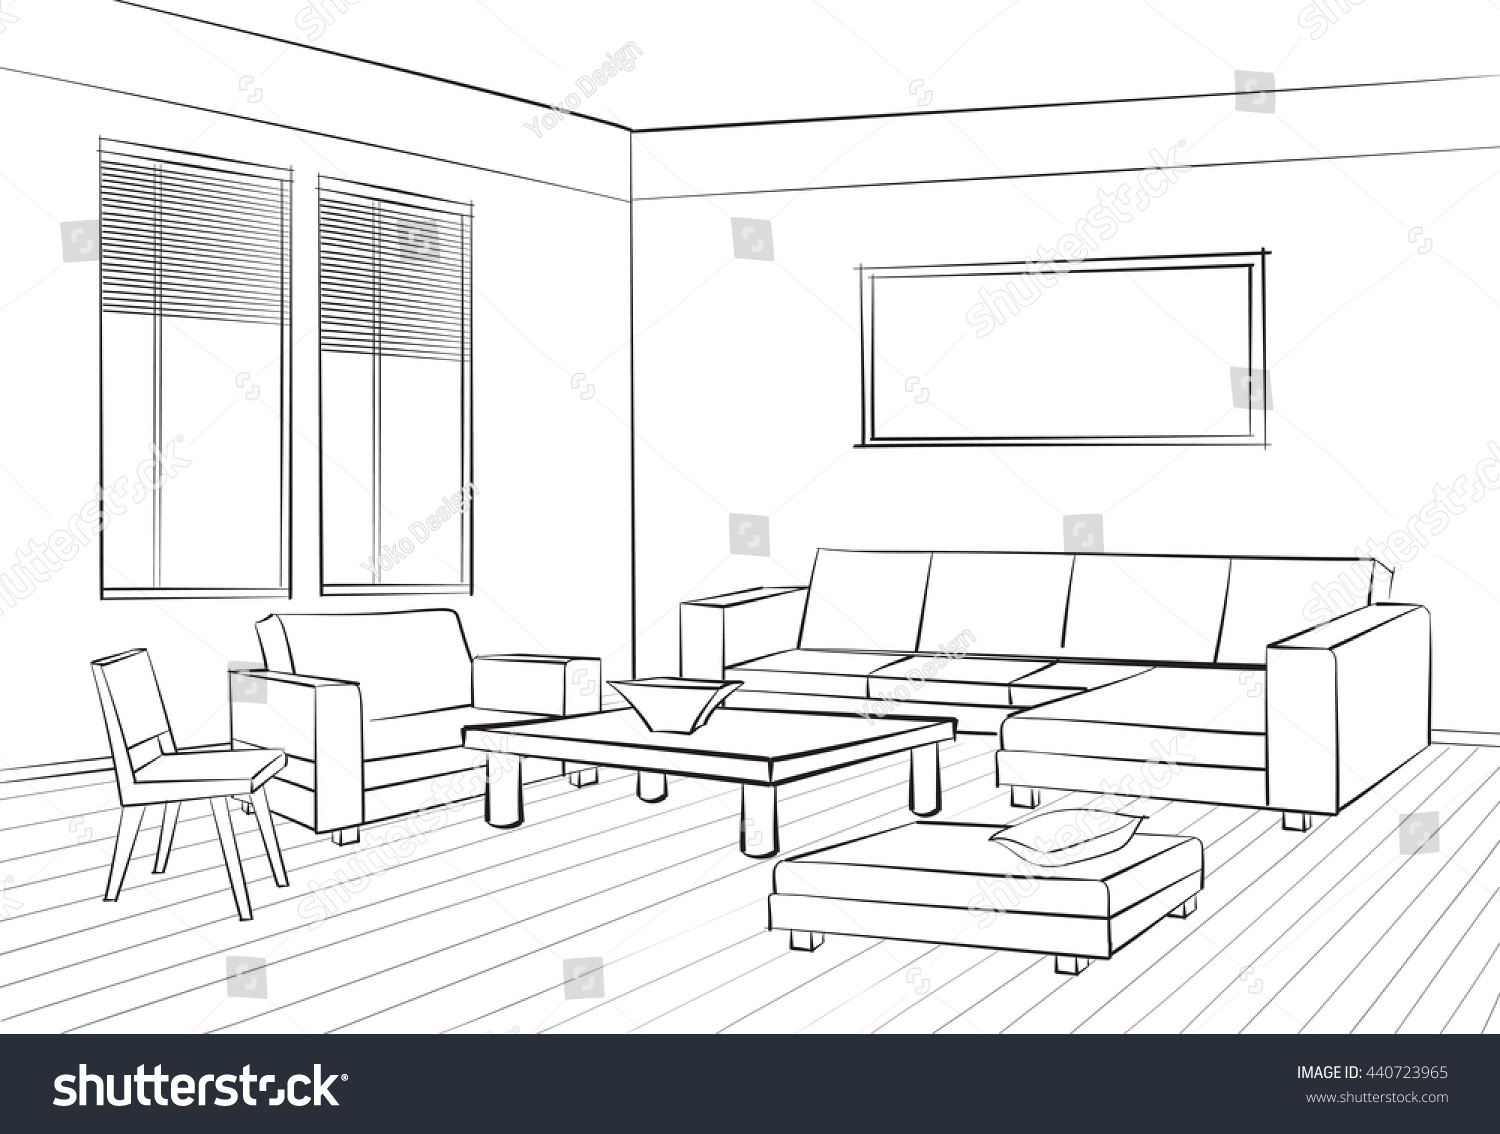 Home Interior Furniture Sofa Armchair Table Stock Vector